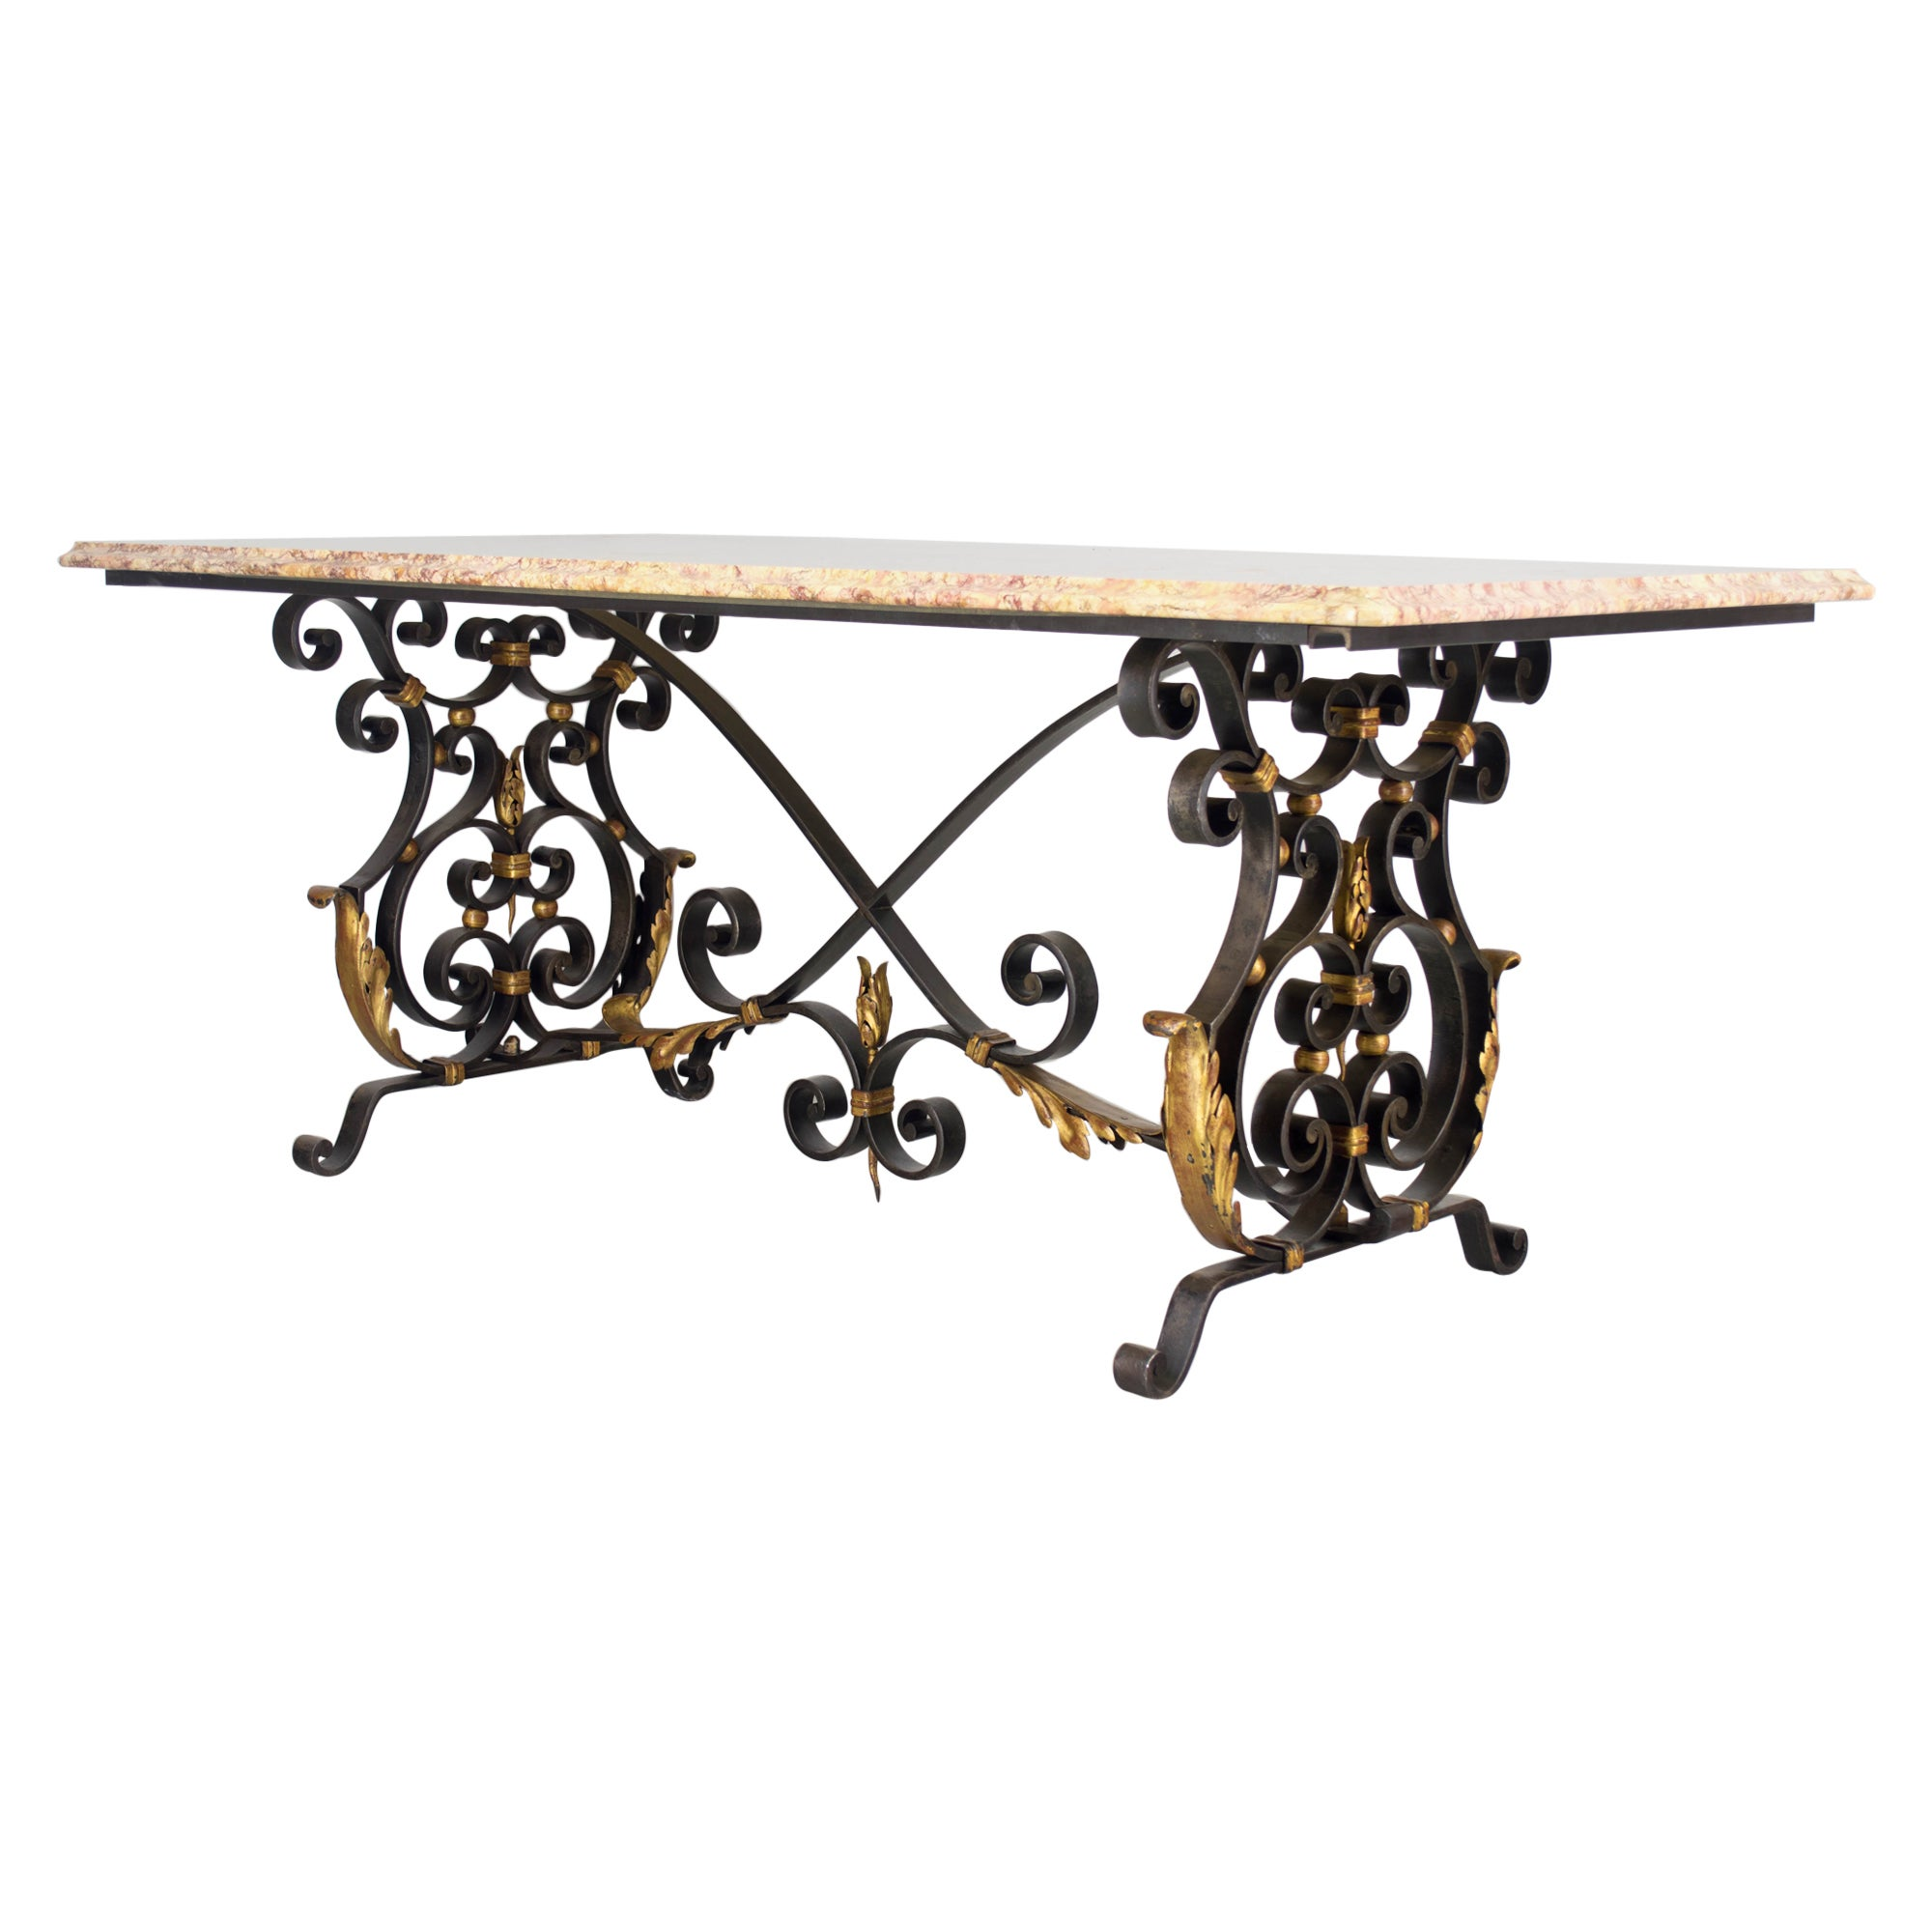 Midcentury French Iron and Marble Center Table